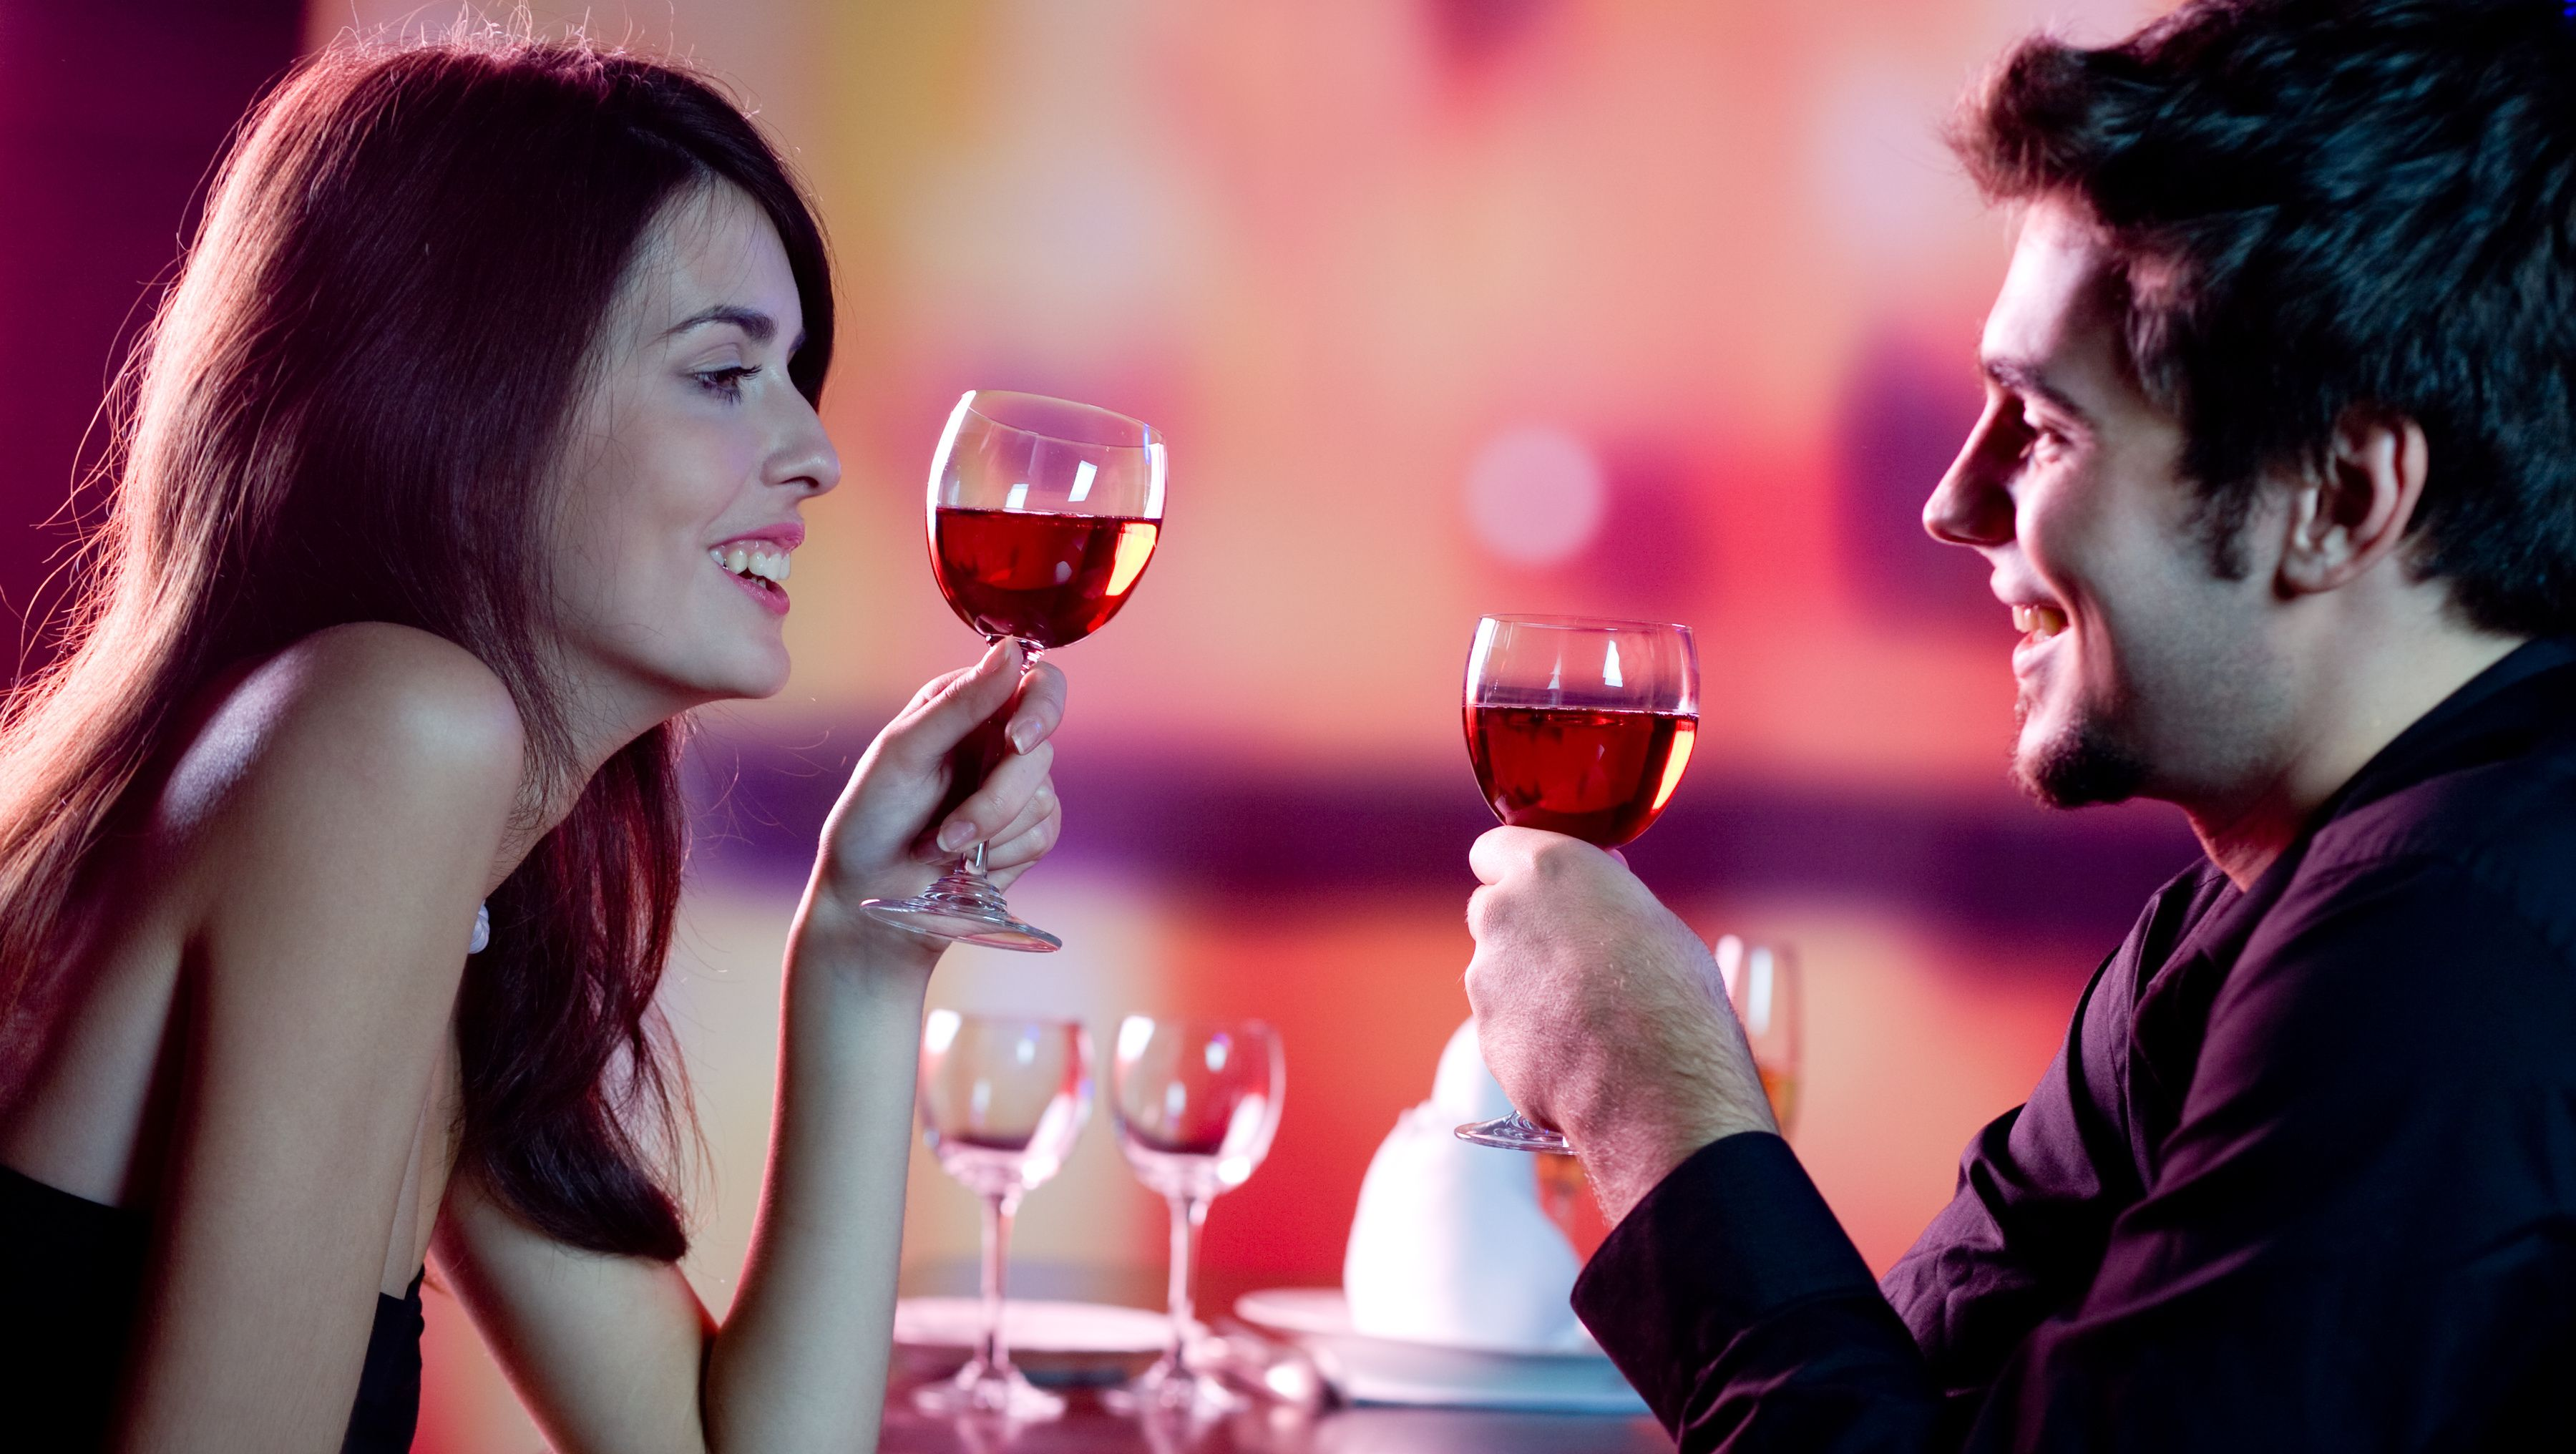 dating Radio Aire Dating makes it easier than ever to connect with singles.